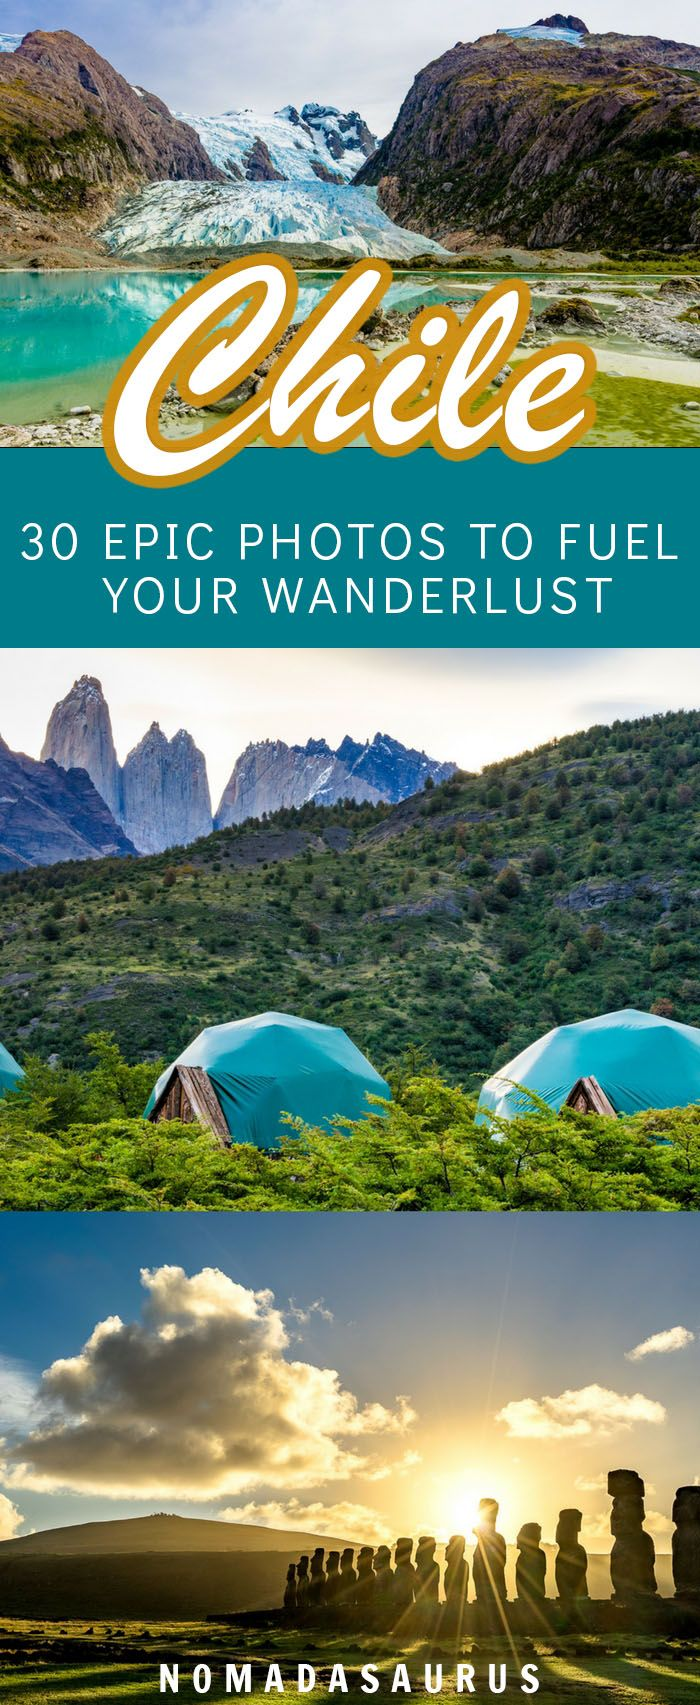 Chile is such a beautiful destination! From Atacama to Valparaiso to Patagonia, here are 30 epic photos to inspire you to travel the country. #chile #travelphotography